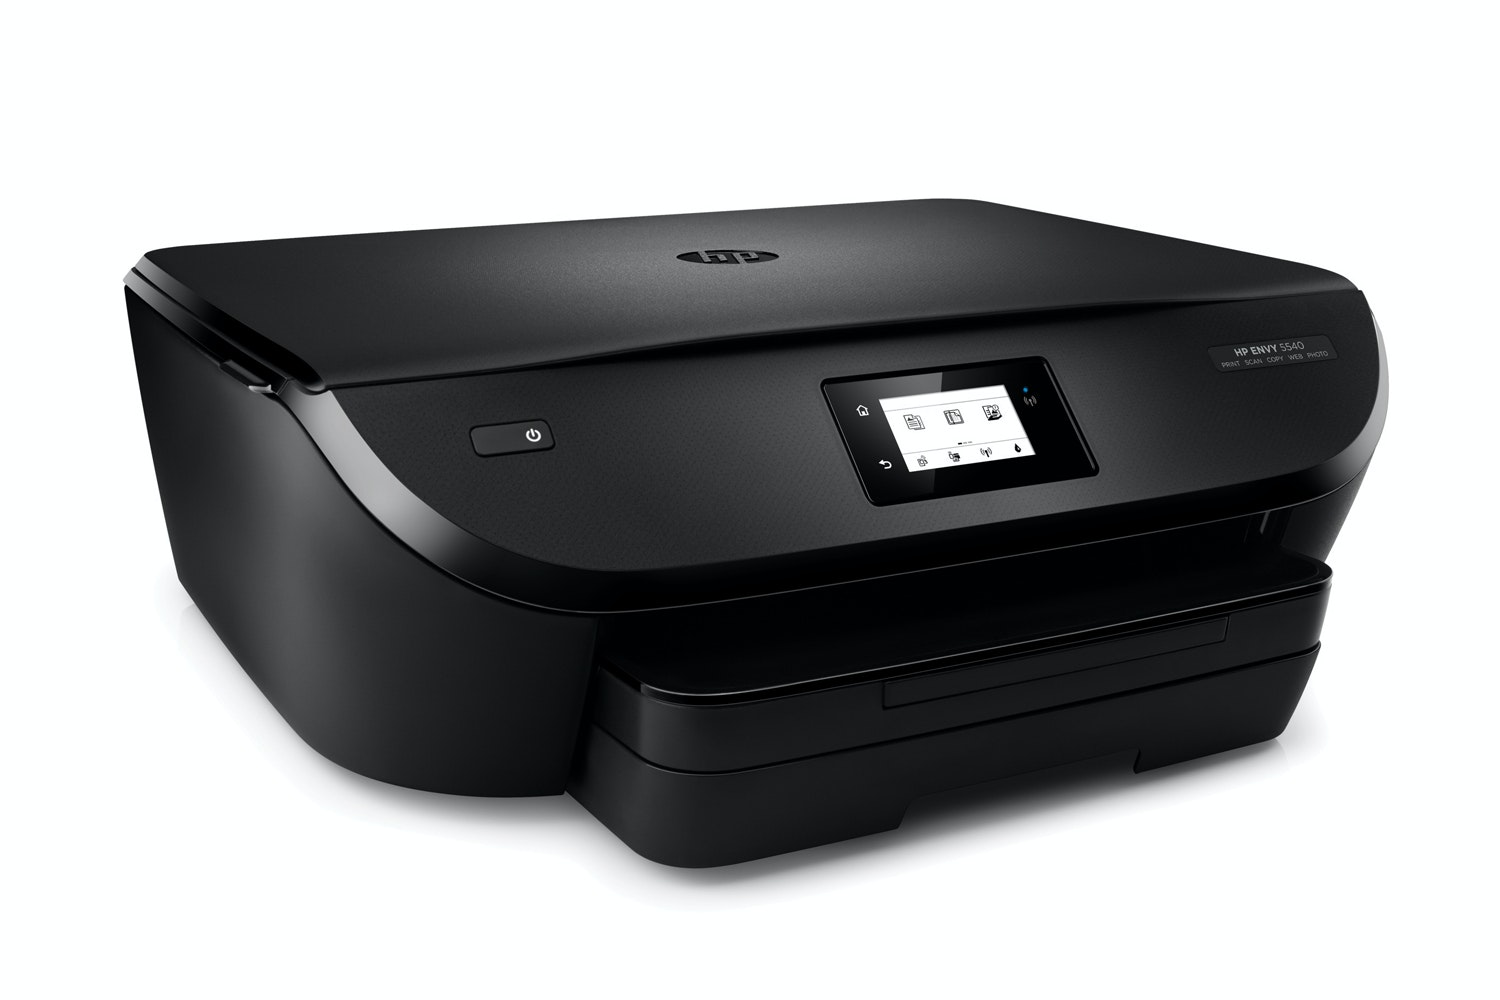 HP Envy 5540 All-in-One WiFi Printer